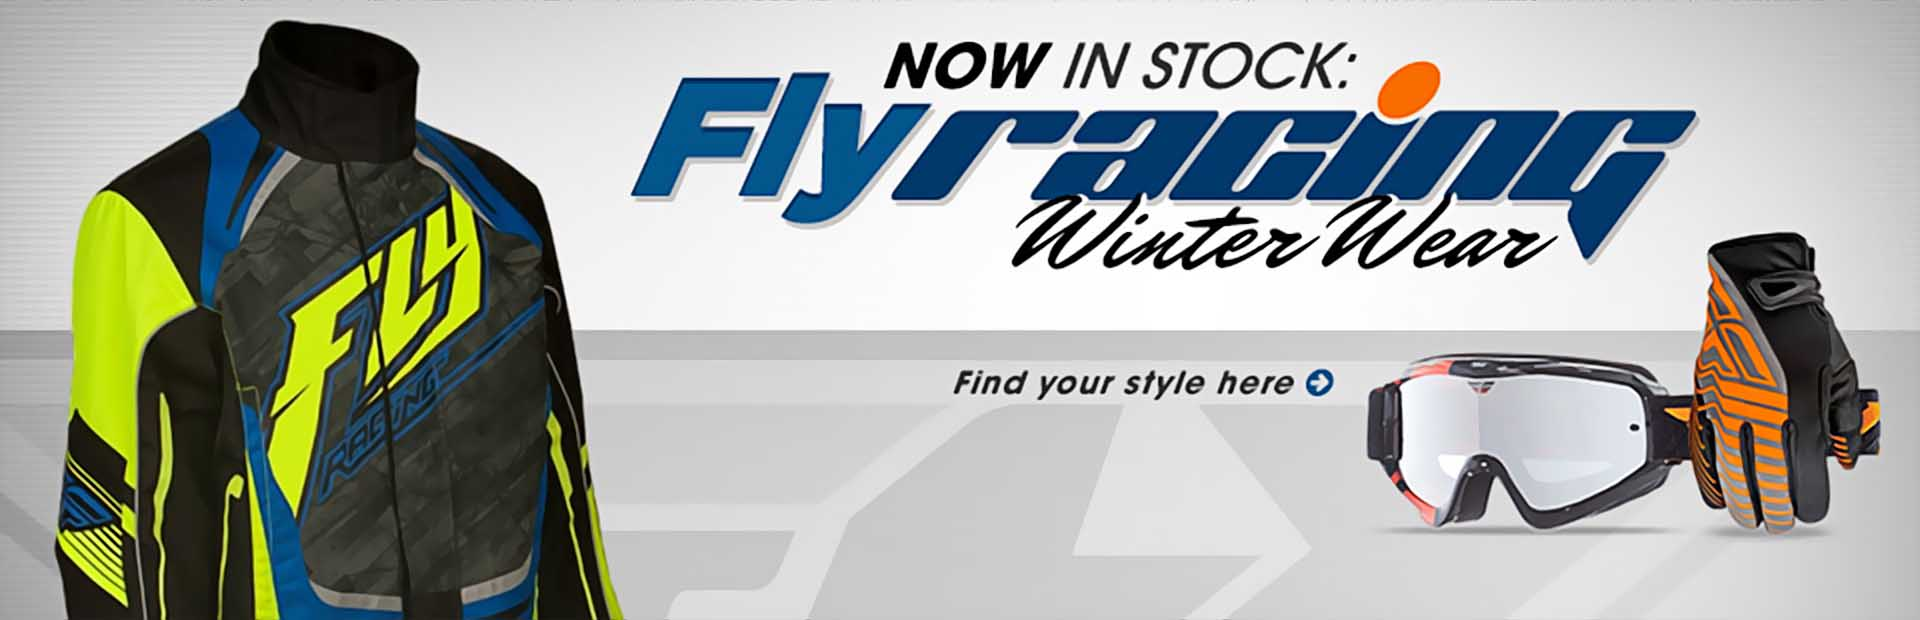 Fly Racing Winter Wear: Click here to shop online.